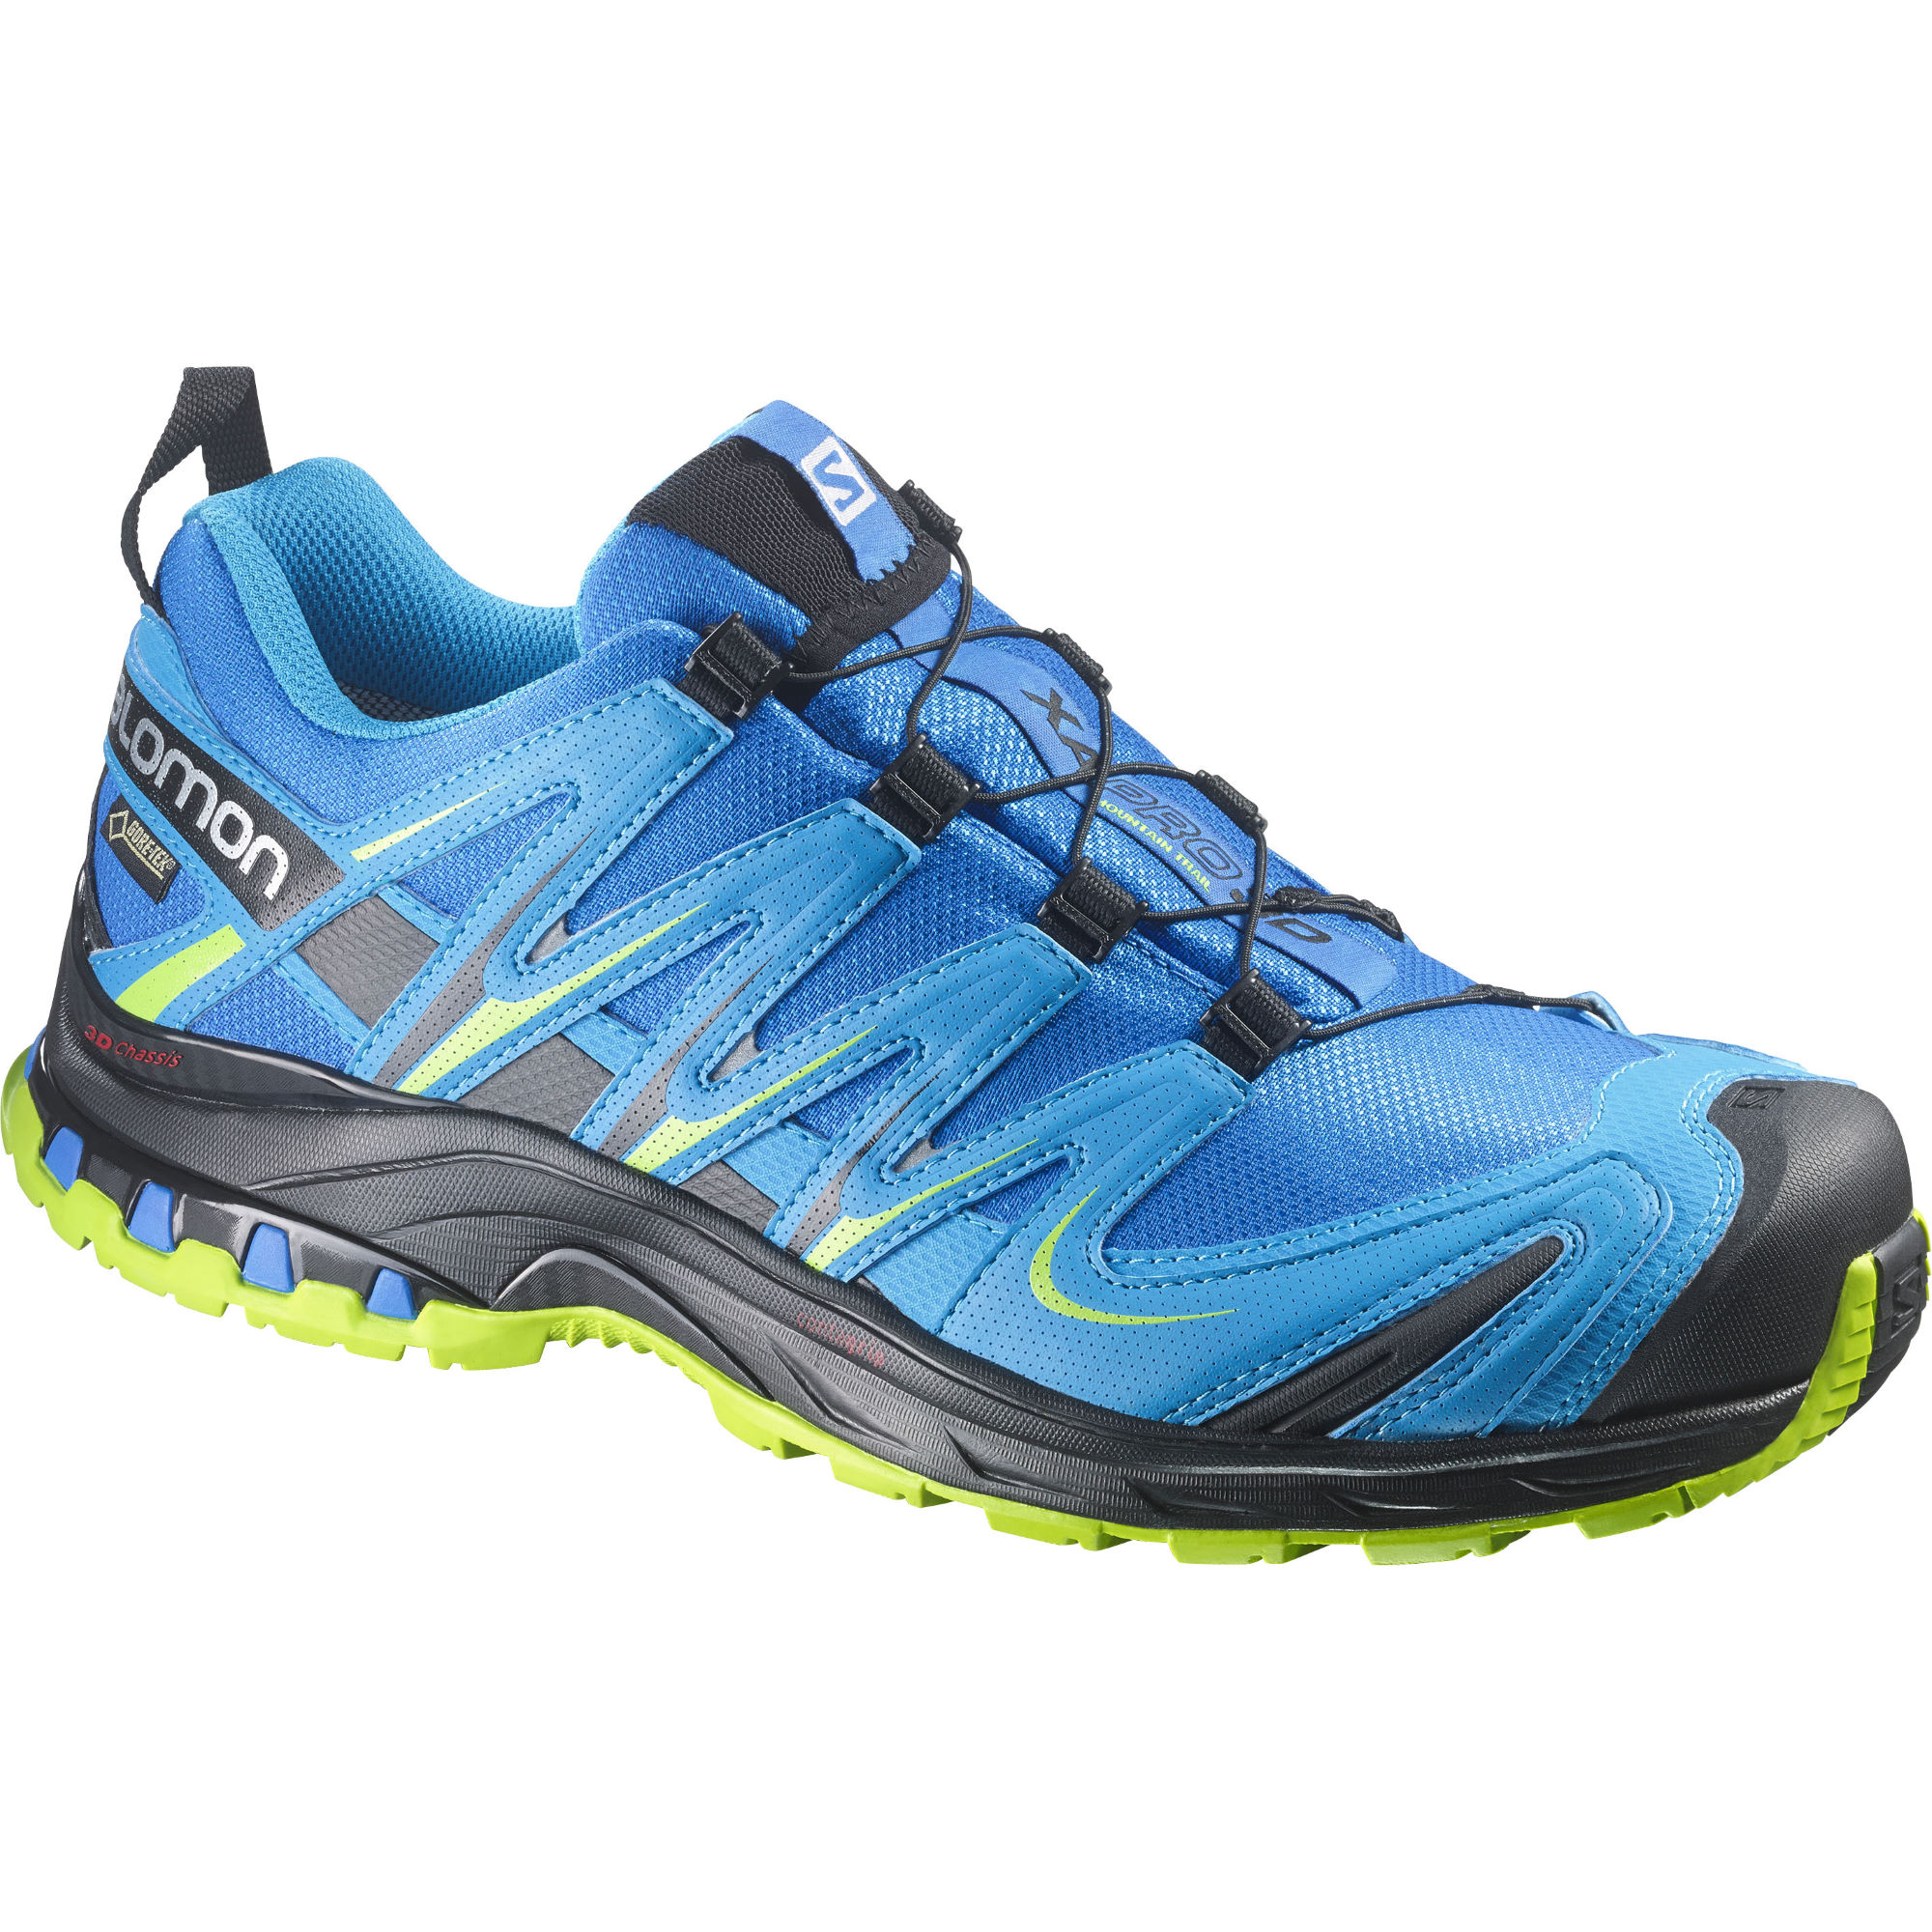 wiggle salomon xa pro 3d gtx shoes ss15 offroad running shoes. Black Bedroom Furniture Sets. Home Design Ideas